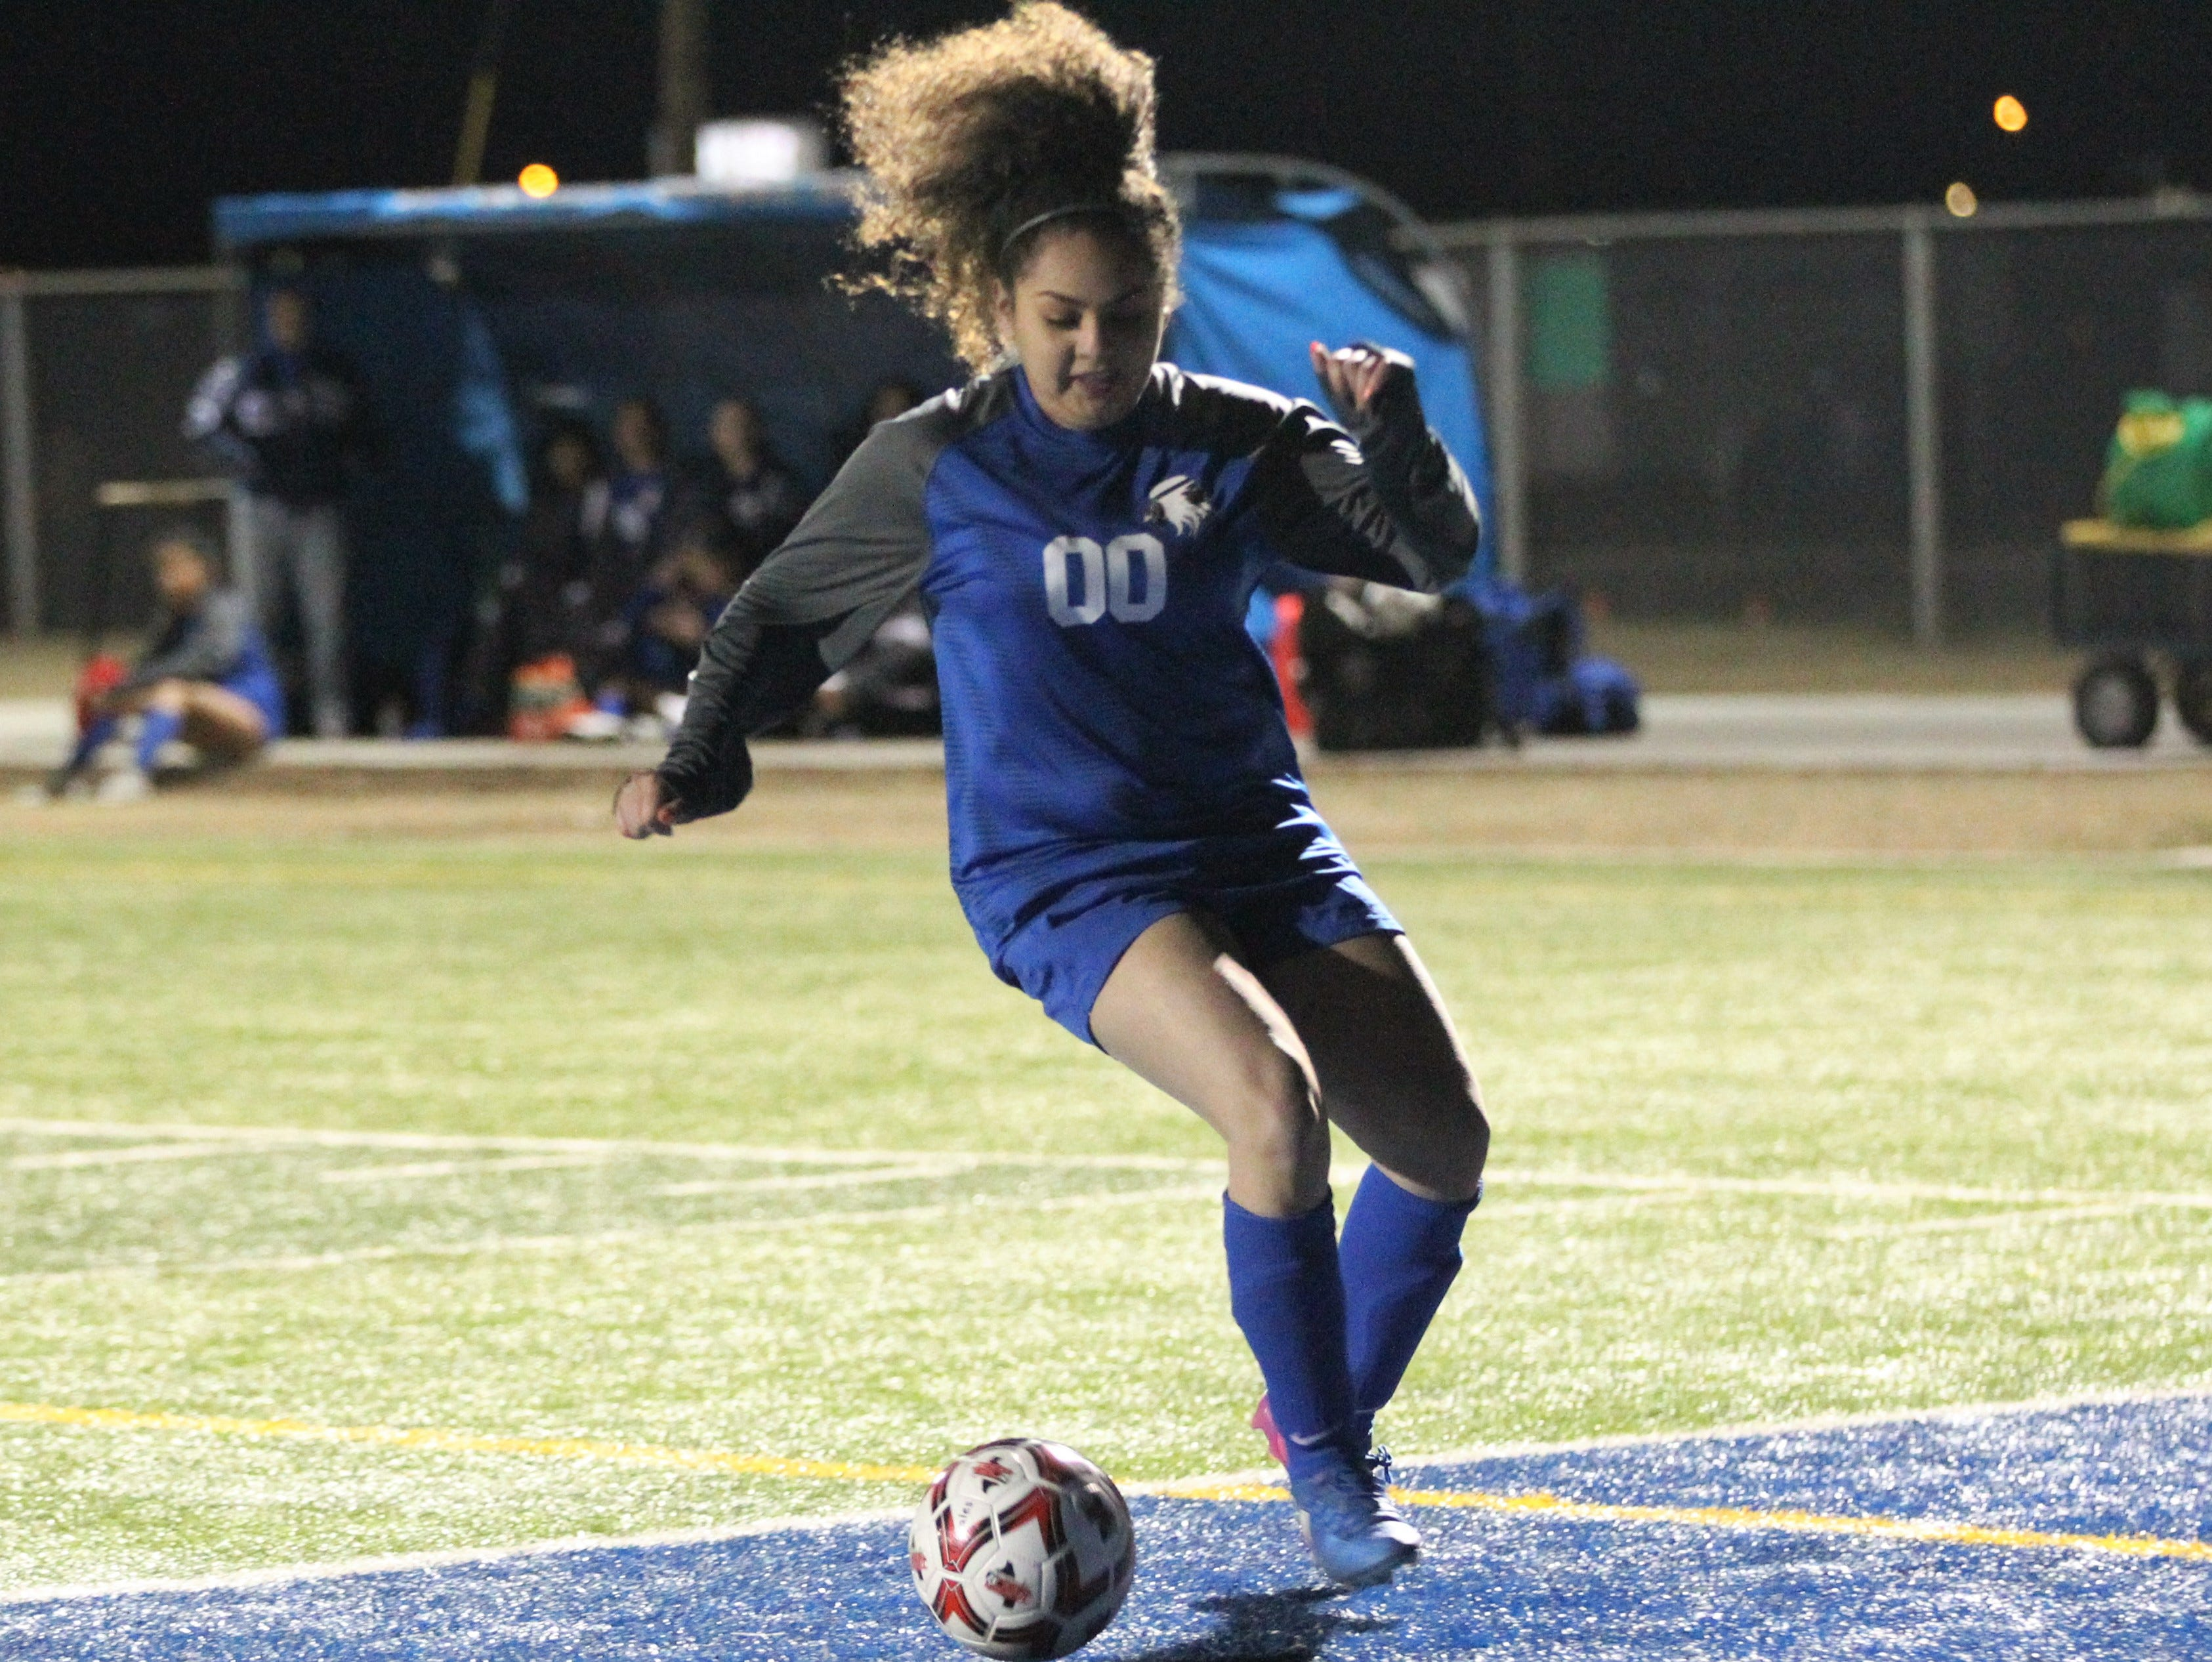 Lake View's Rosy Yamileth Guerrero works the ball in a District 4-4A soccer match against Snyder at Old Bobcat Stadium on Tuesday, March 5, 2019. The Maidens won 8-0 to secure the district title.